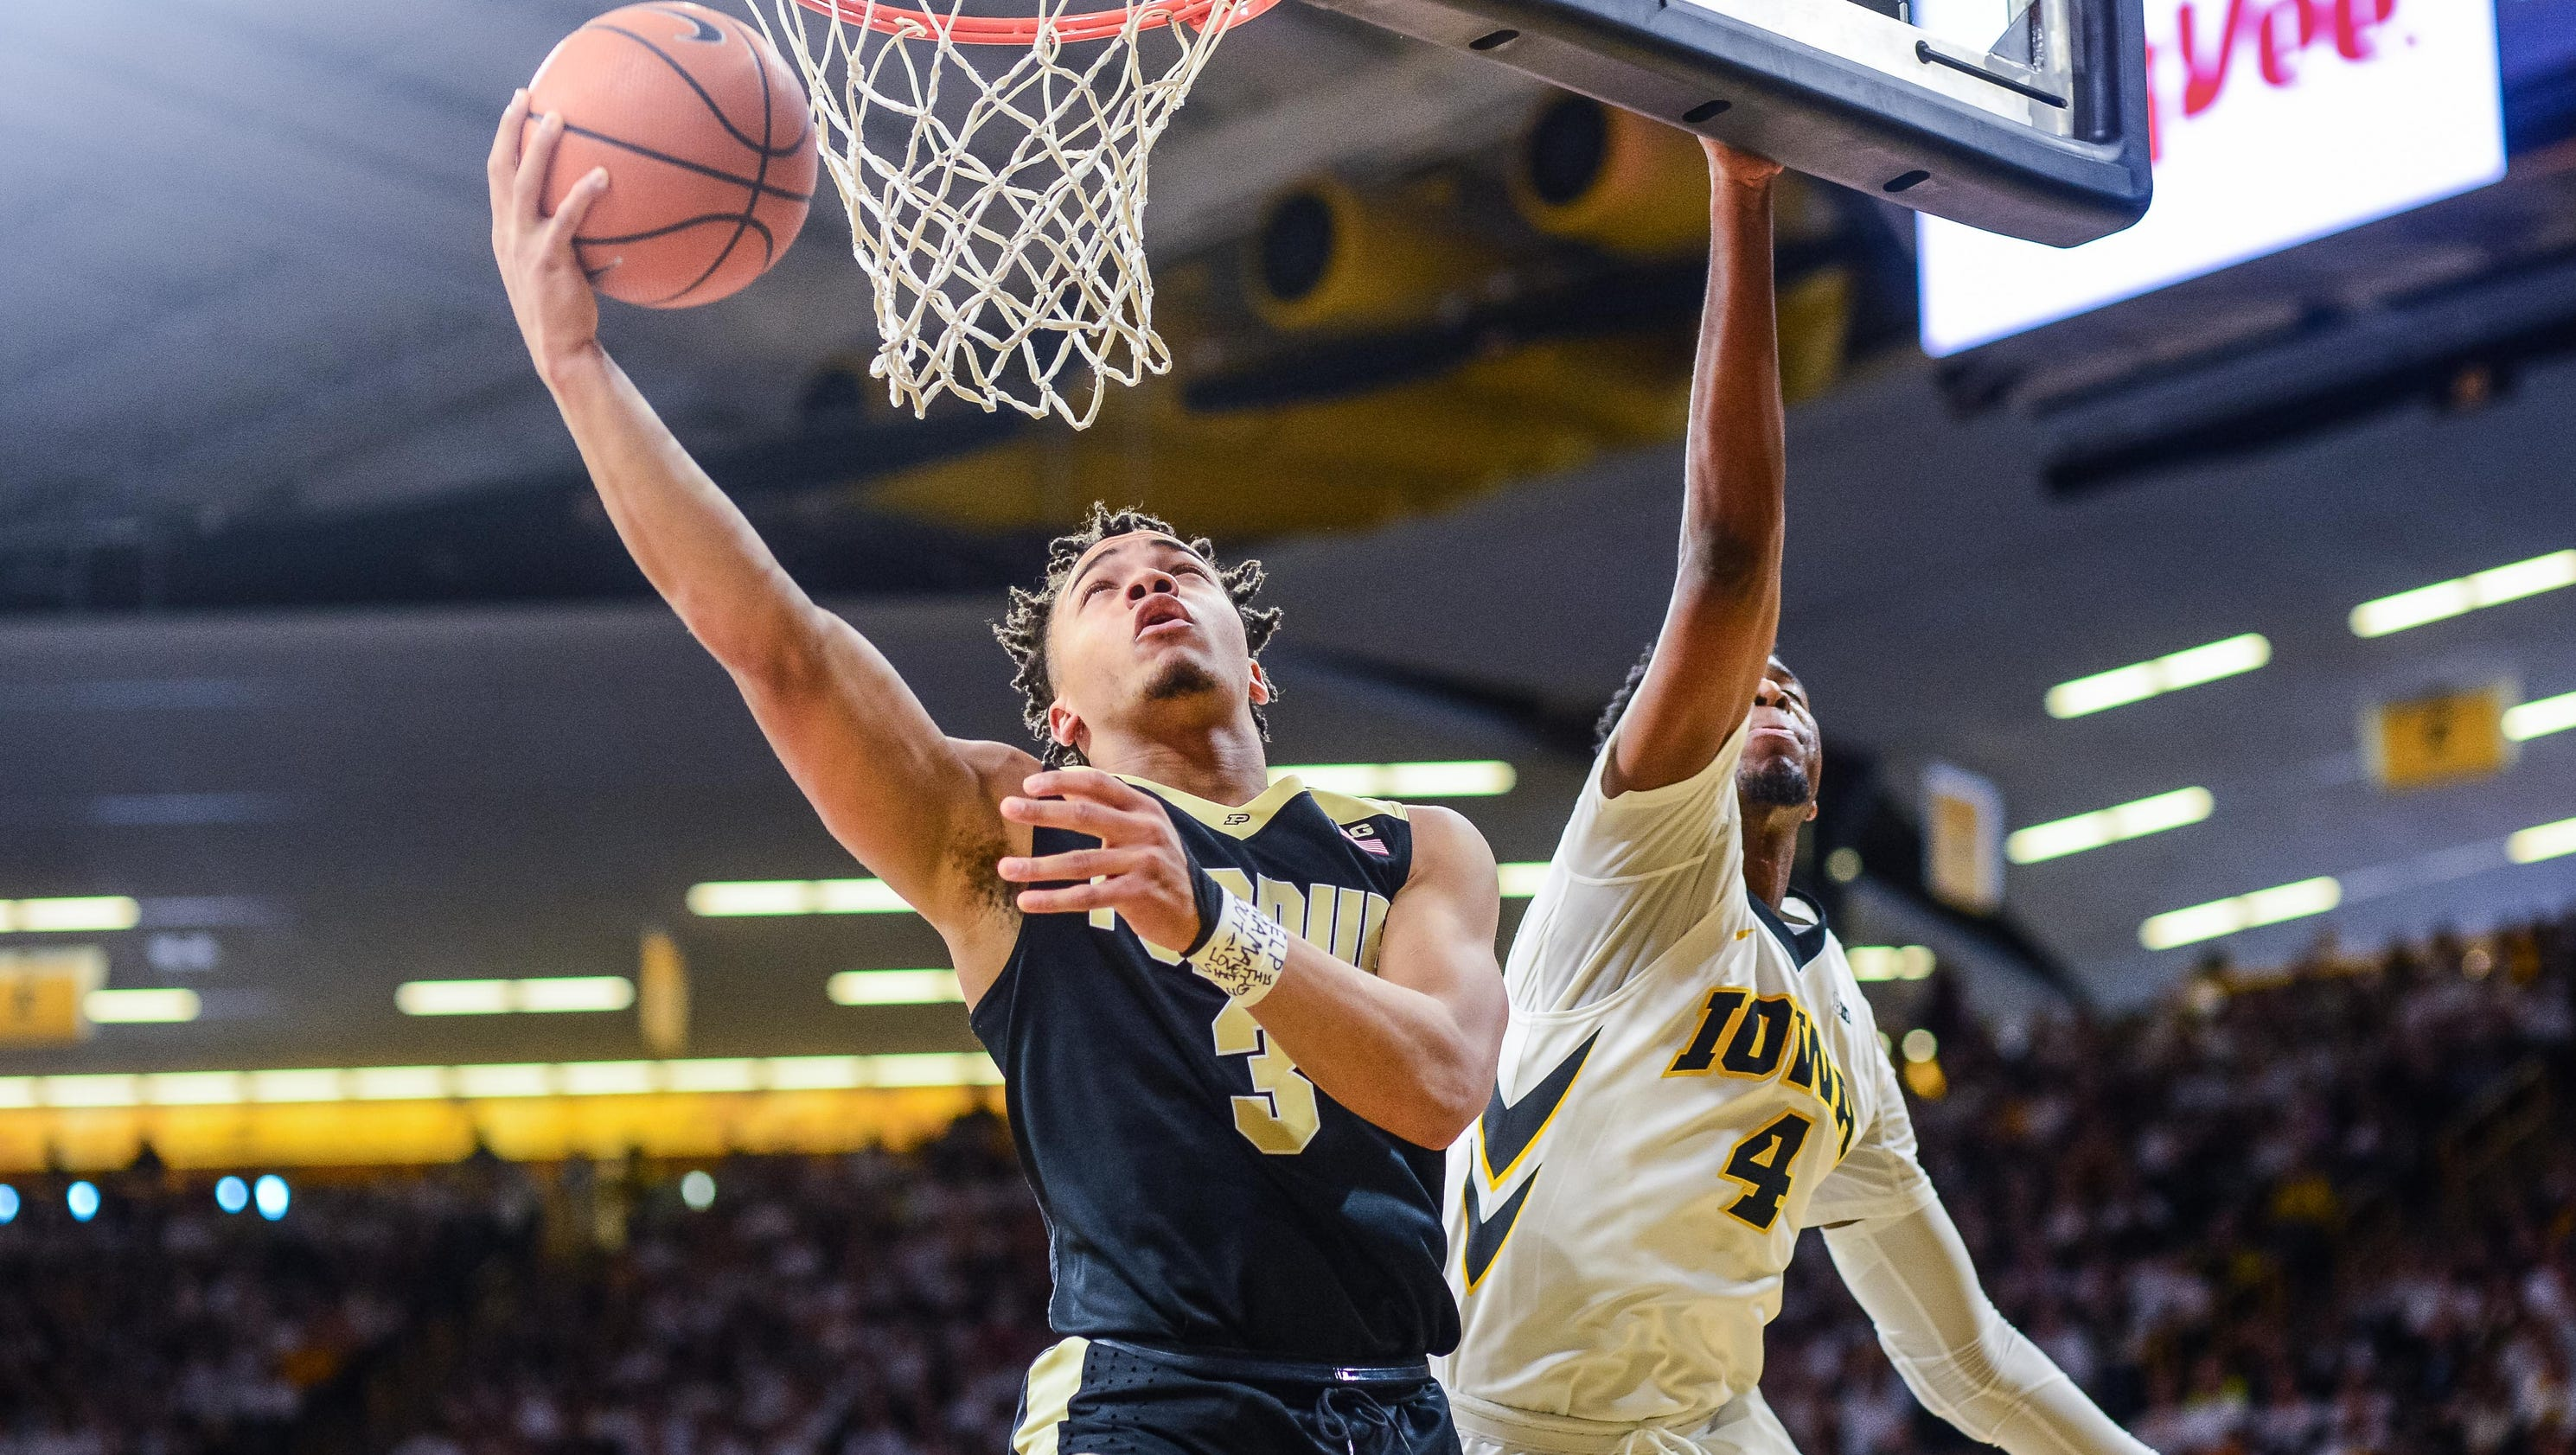 636520522195371714-usp-ncaa-basketball-purdue-at-iowa-96732871